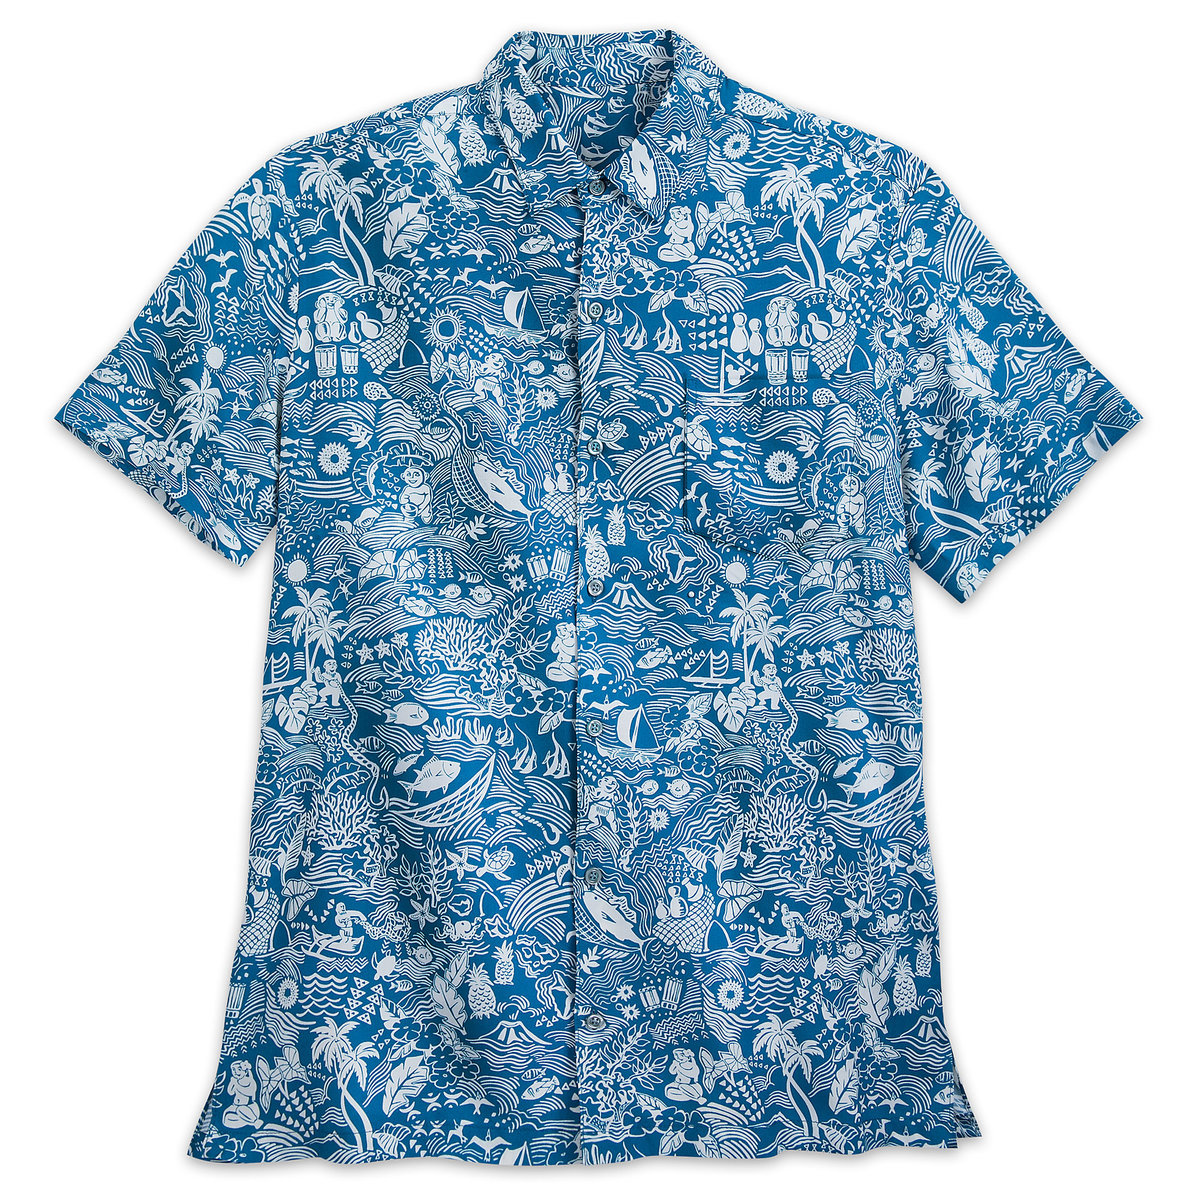 98f0822b Product Image of Aulani, A Disney Resort & Spa Aloha Shirt for Men by Tori